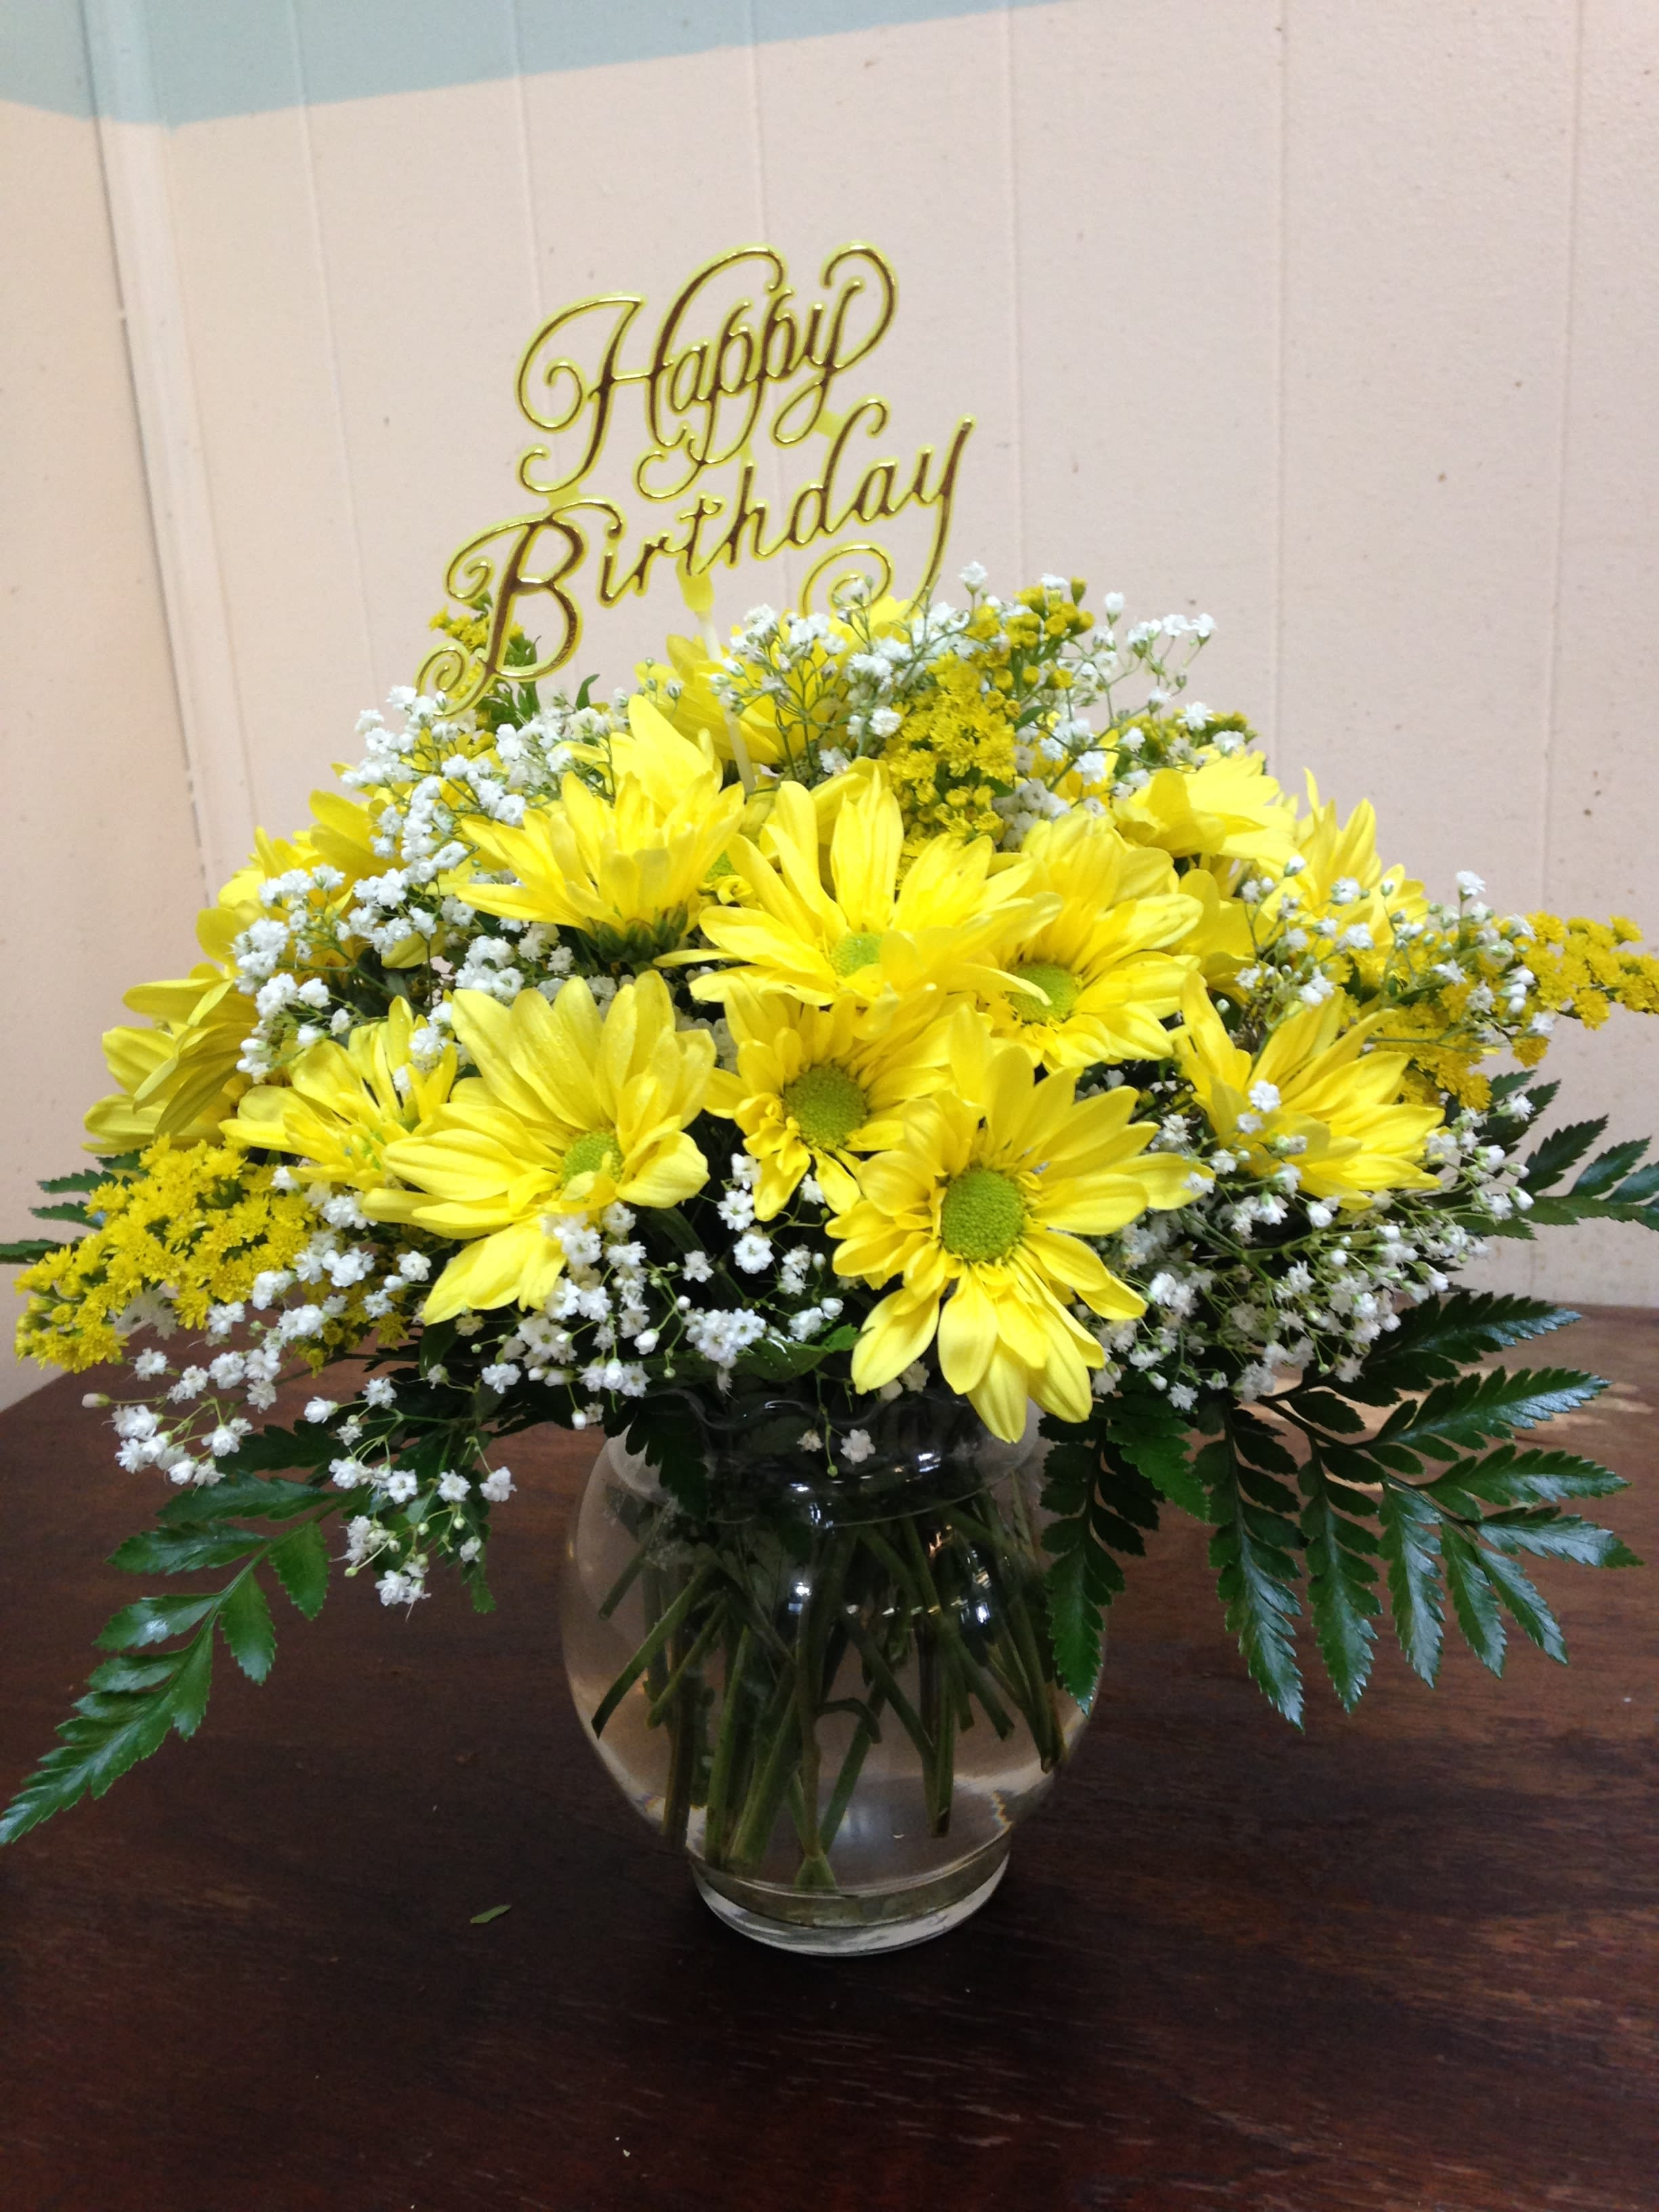 Happy Happy Birthday In Platte City Mo Platte City Flowers And Gifts